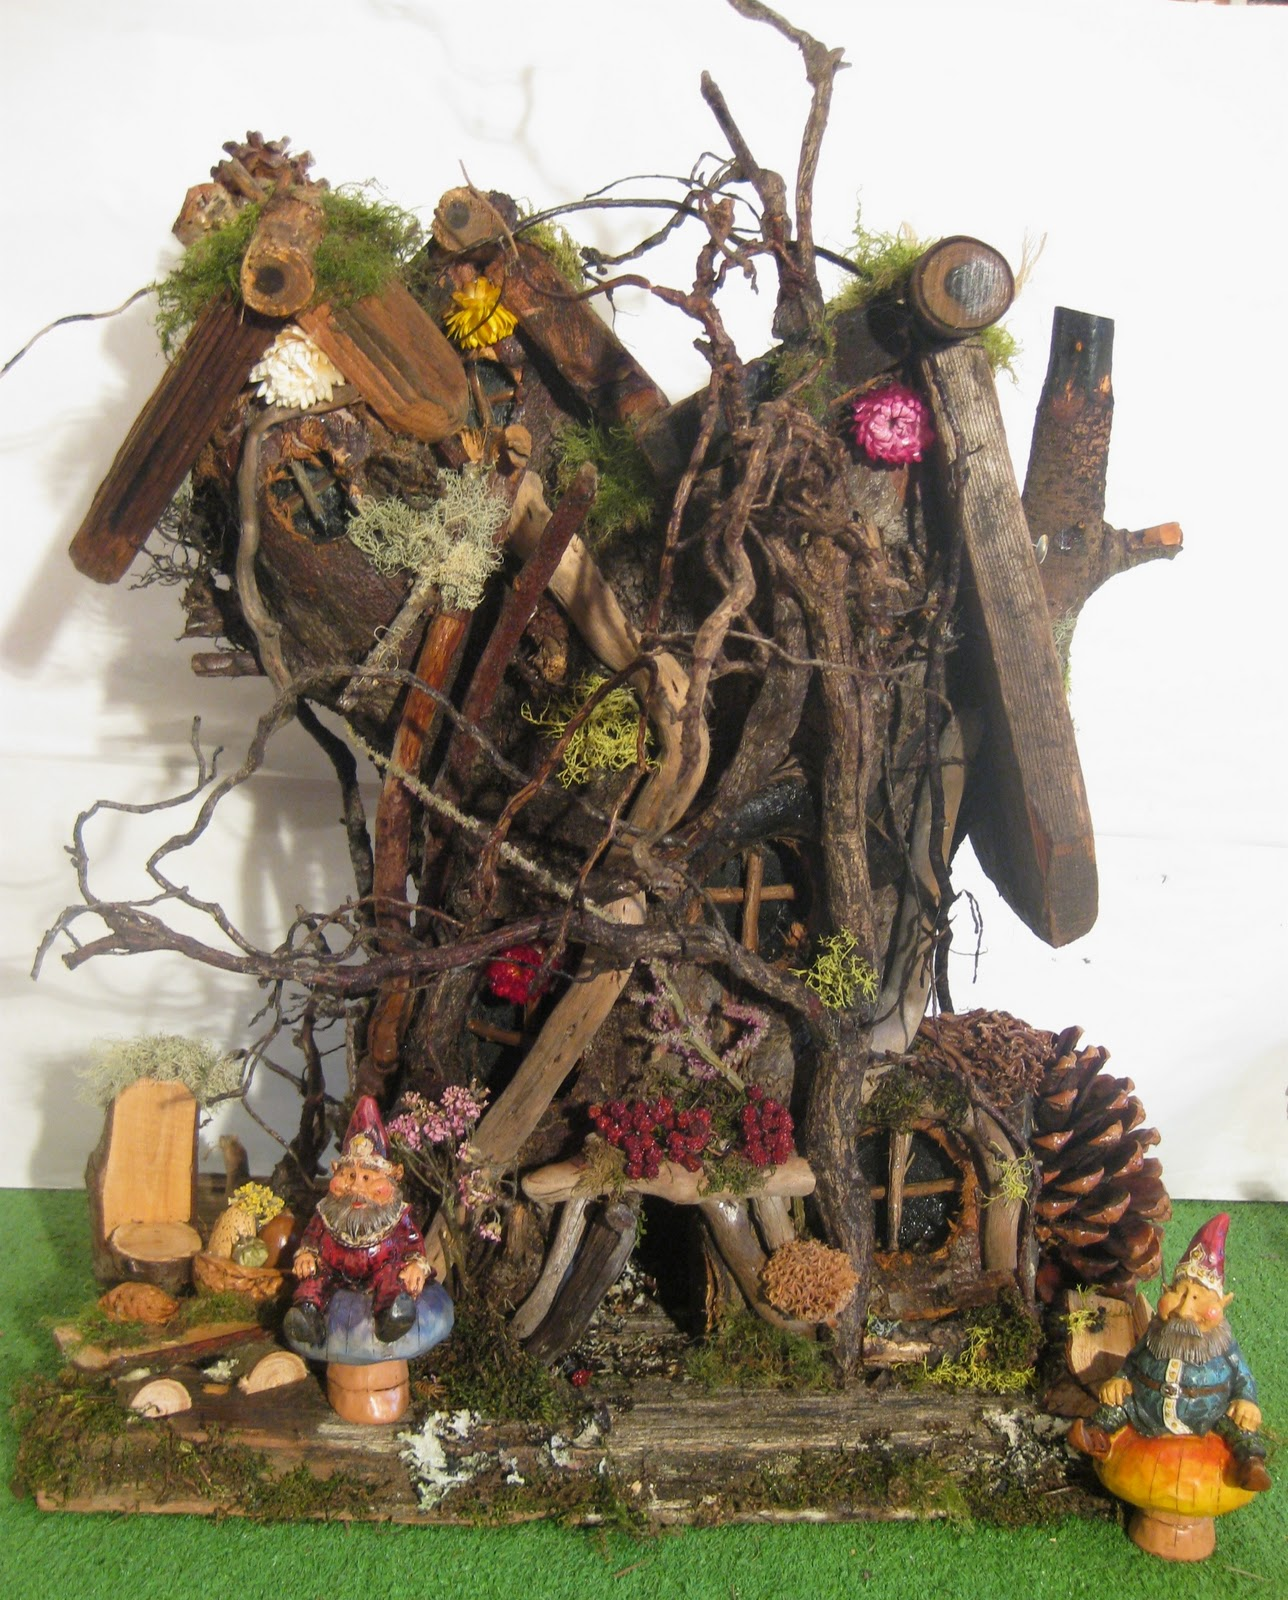 Gnome Tree Stump Home: Gnome Stories At Whimsical Woods: Gnome Homes